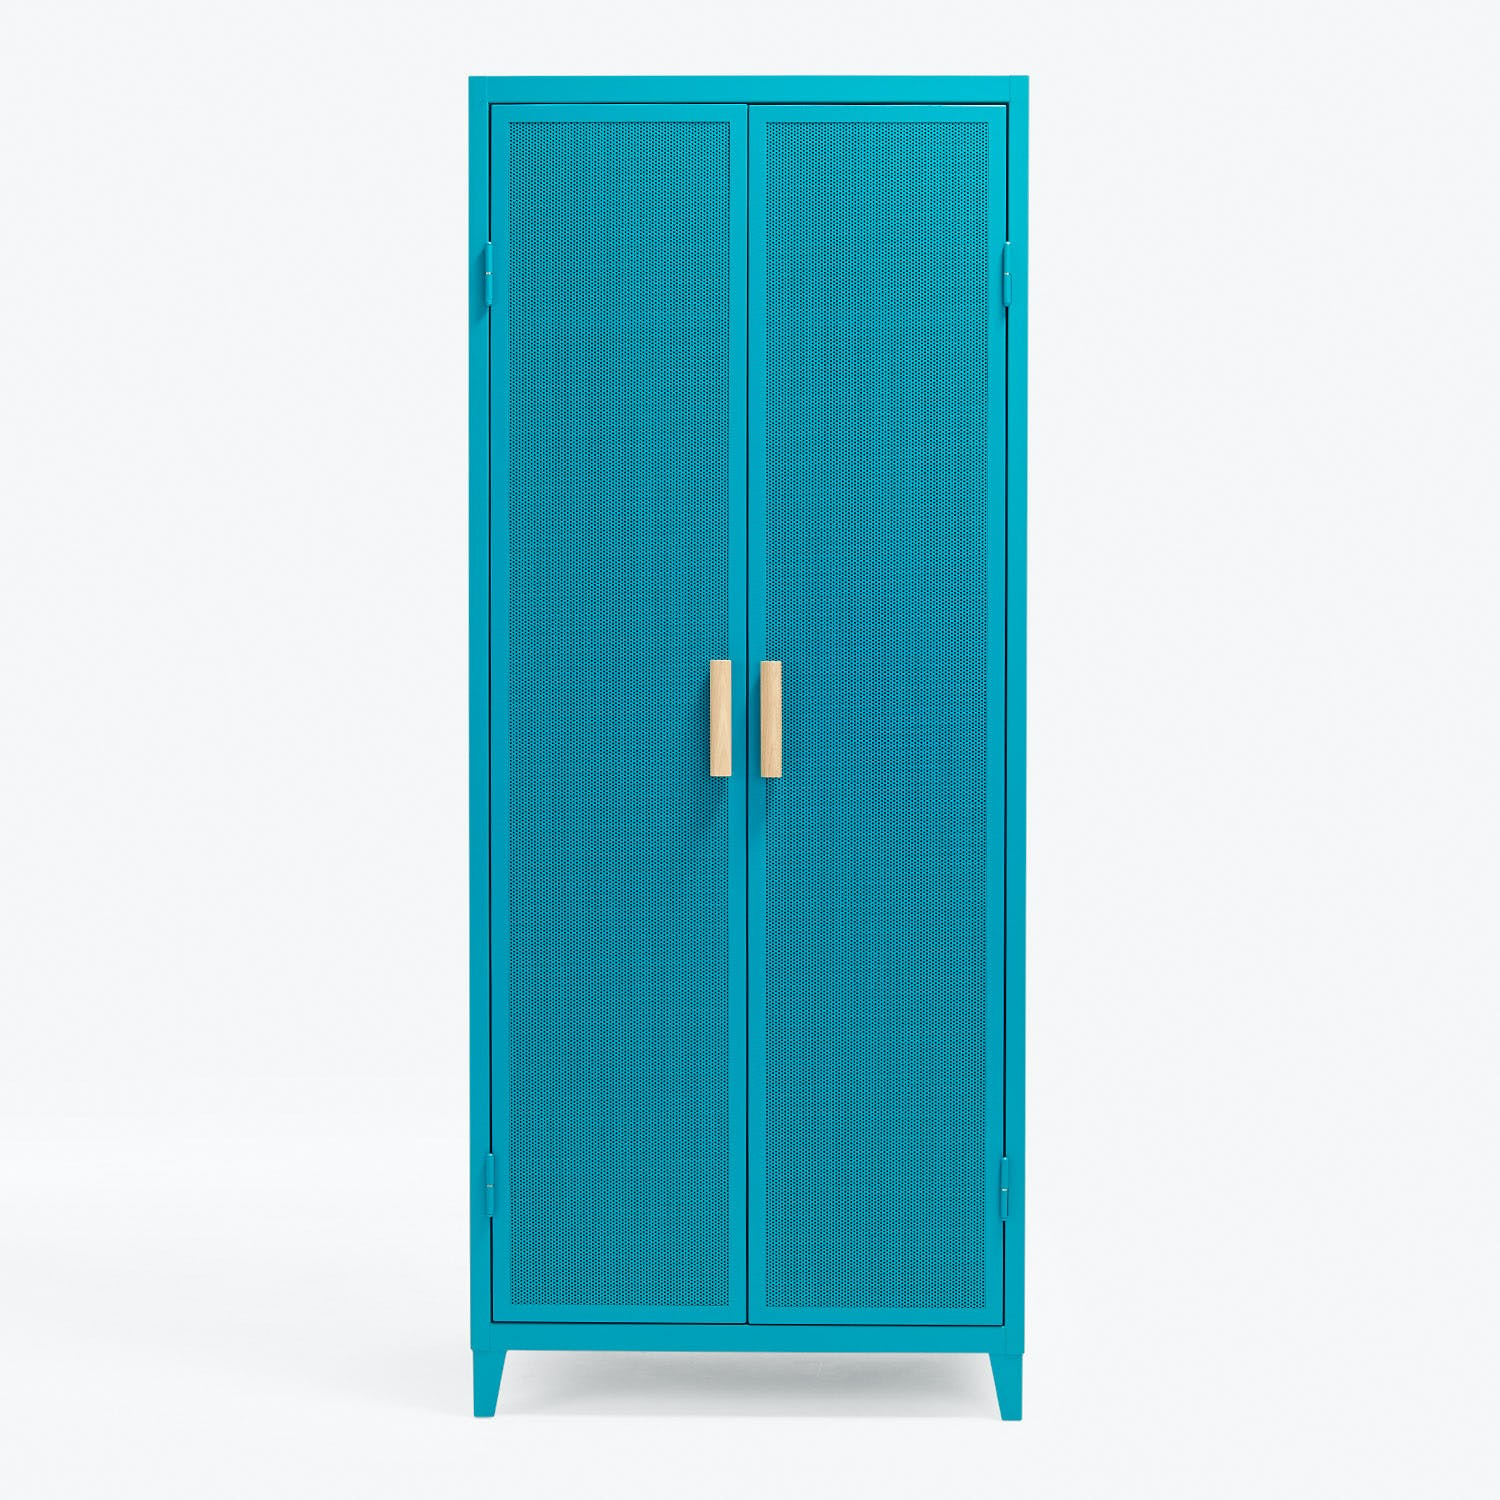 Product Image - Perforated 2-Door Locker Blue